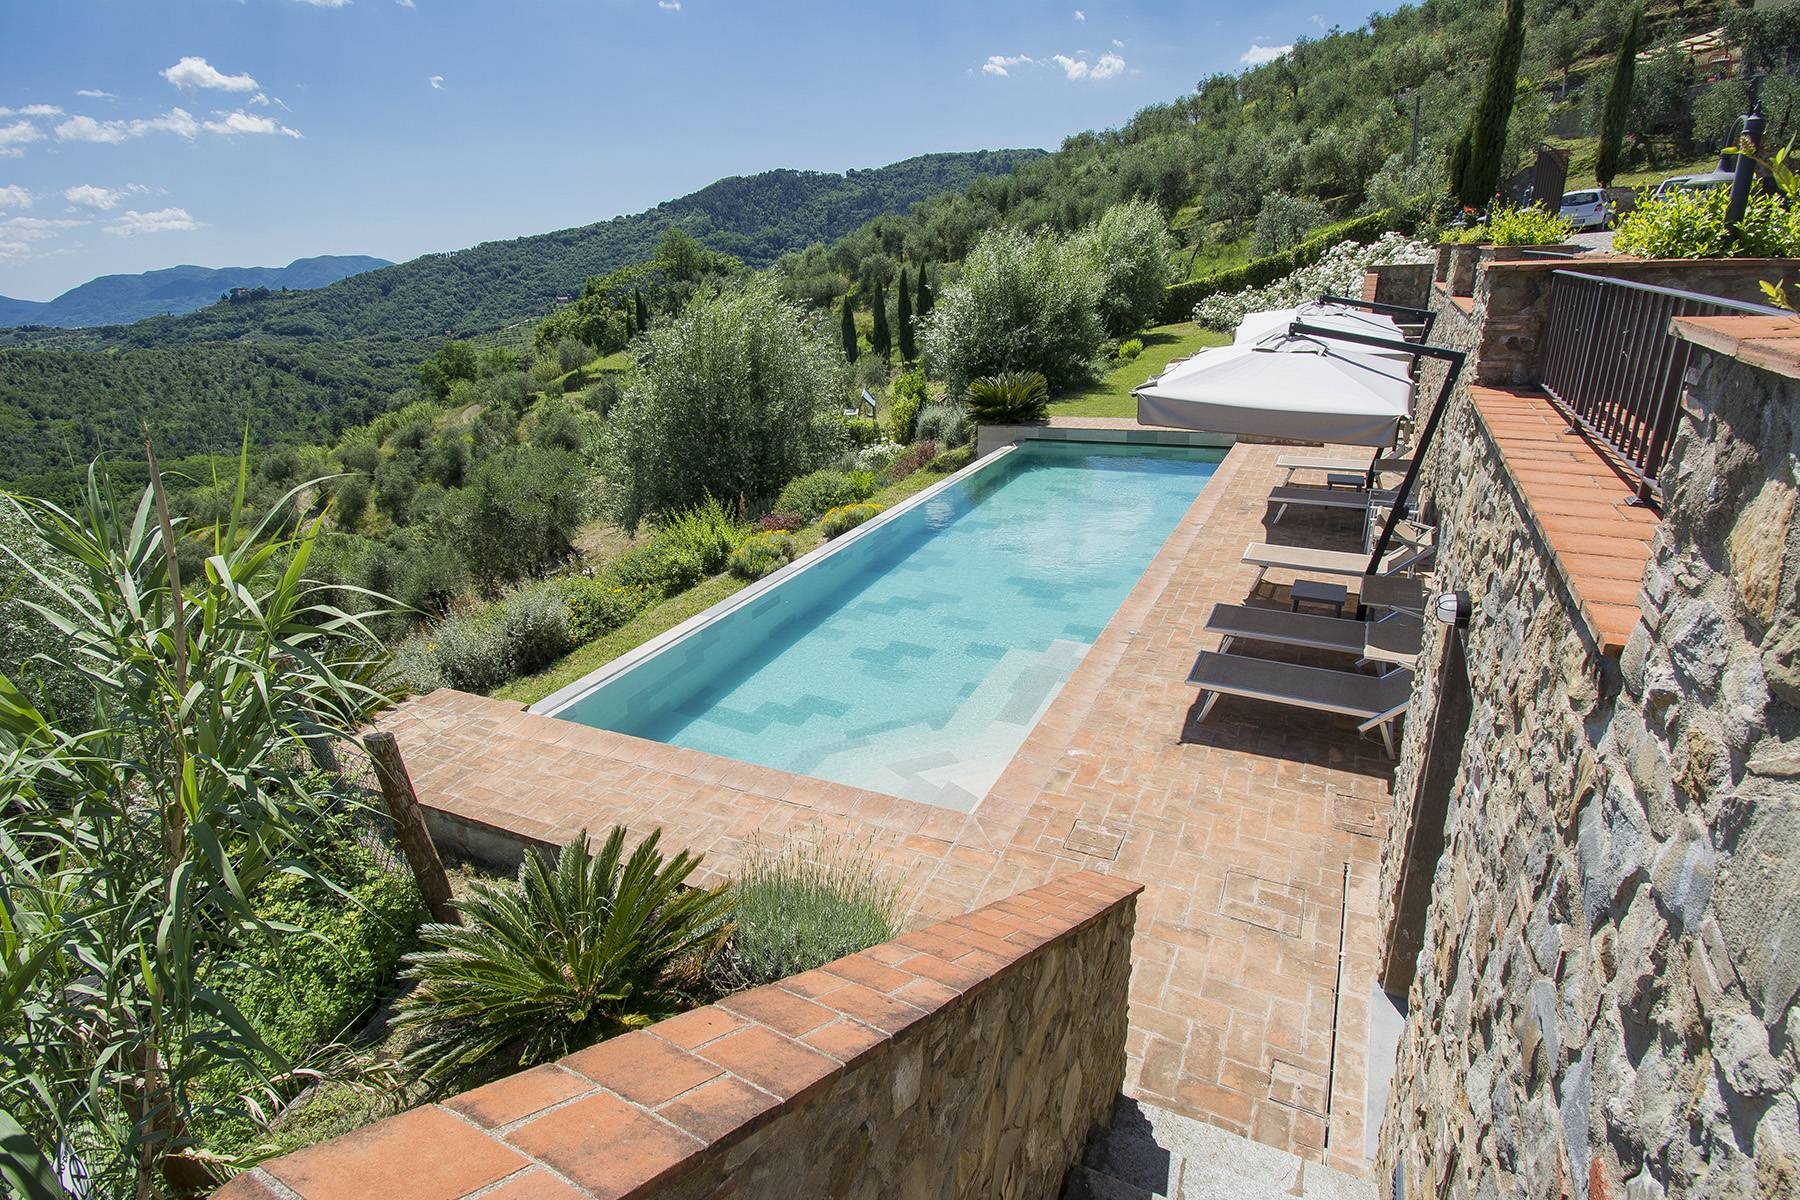 Stunning Country villa on the hills of Lucca with vineyard - 2